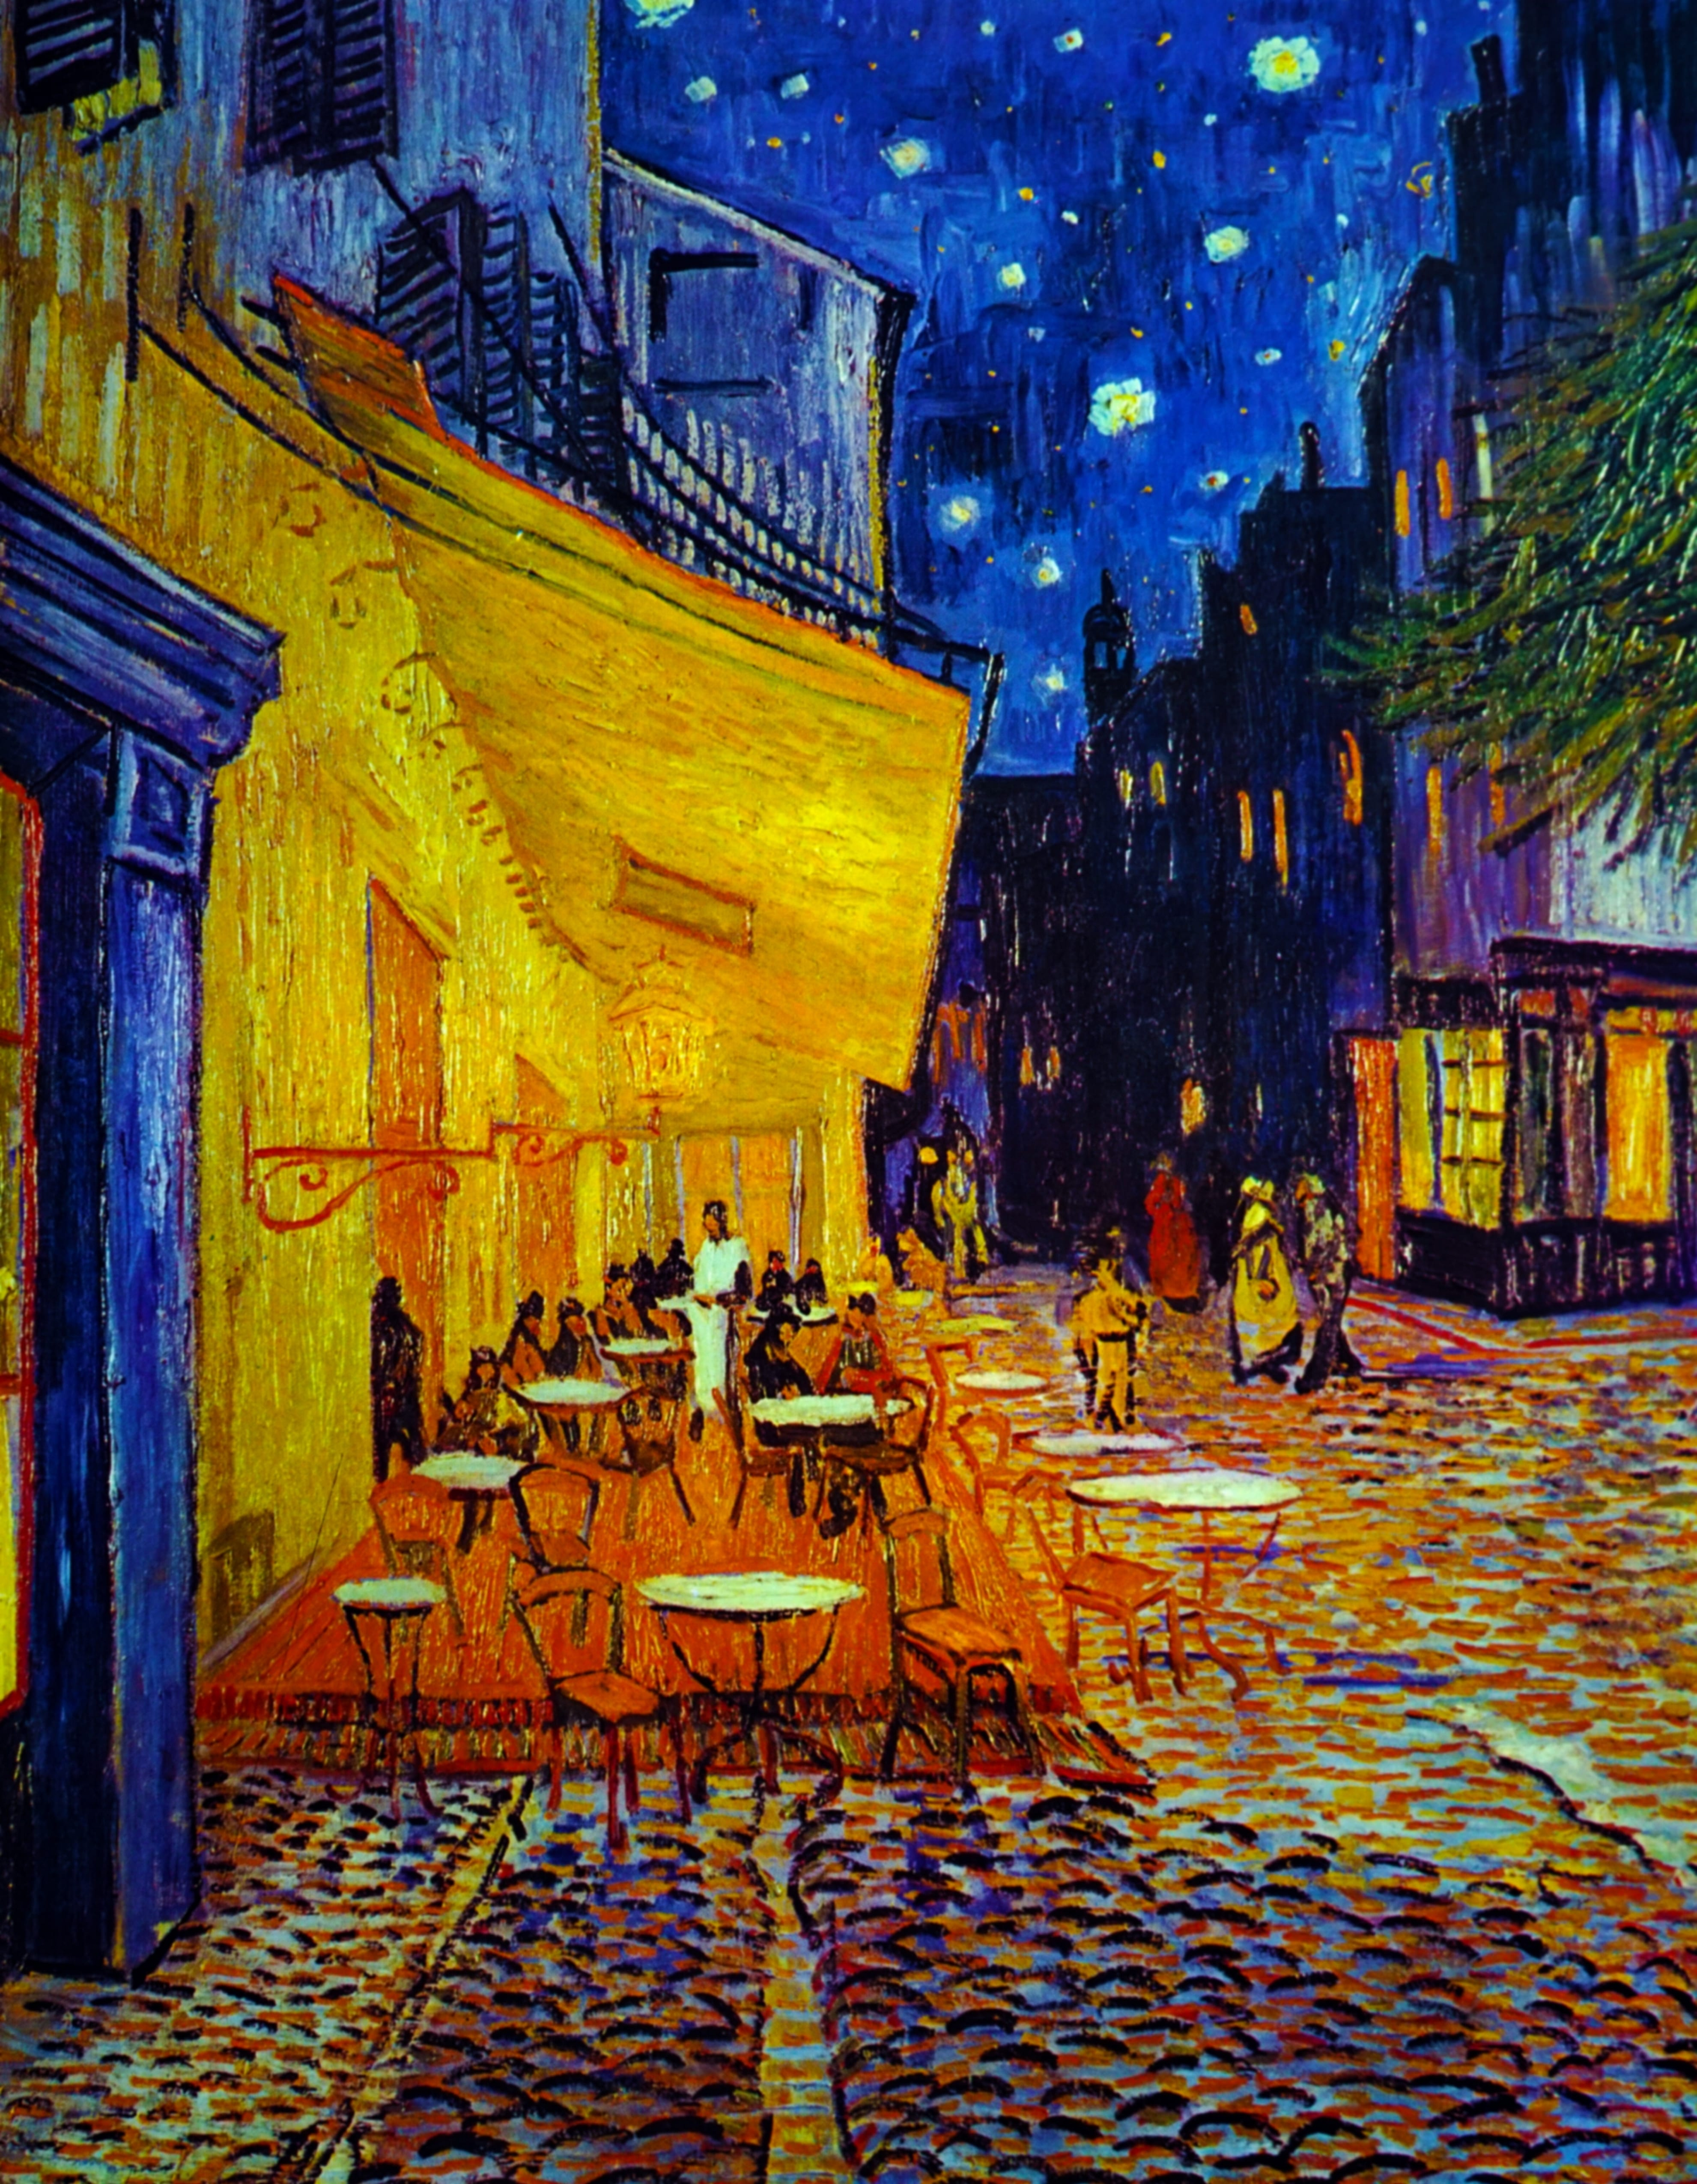 Van Gogh's 'Cafe Terrace at Night' Is at the Center of a Heated Twitter Debate